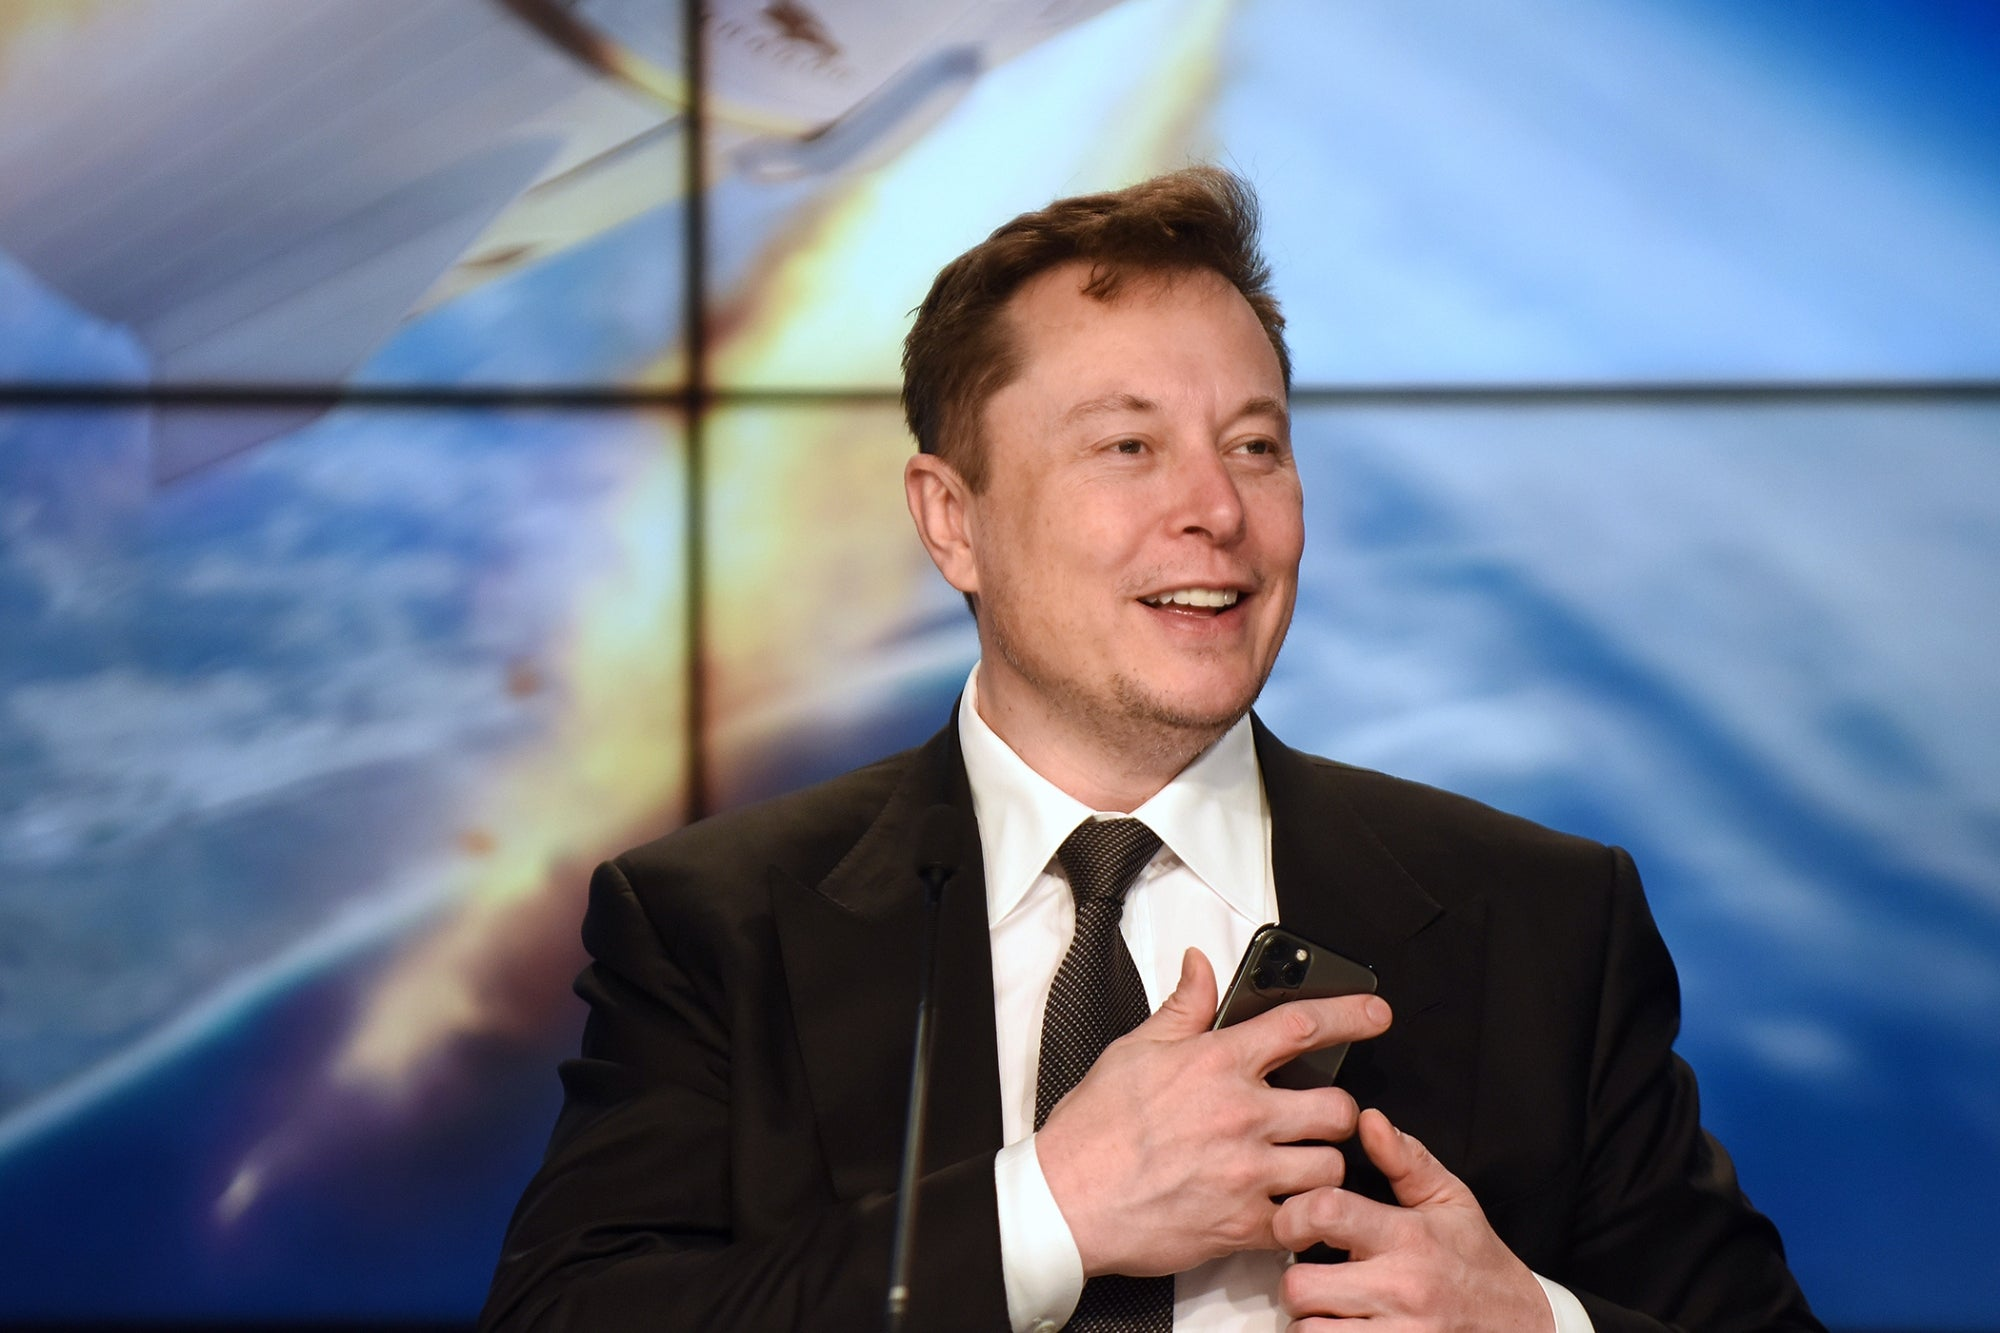 Elon Musk's Tweet Radically Changed the Crypto Game. Here's What You Need to Know.